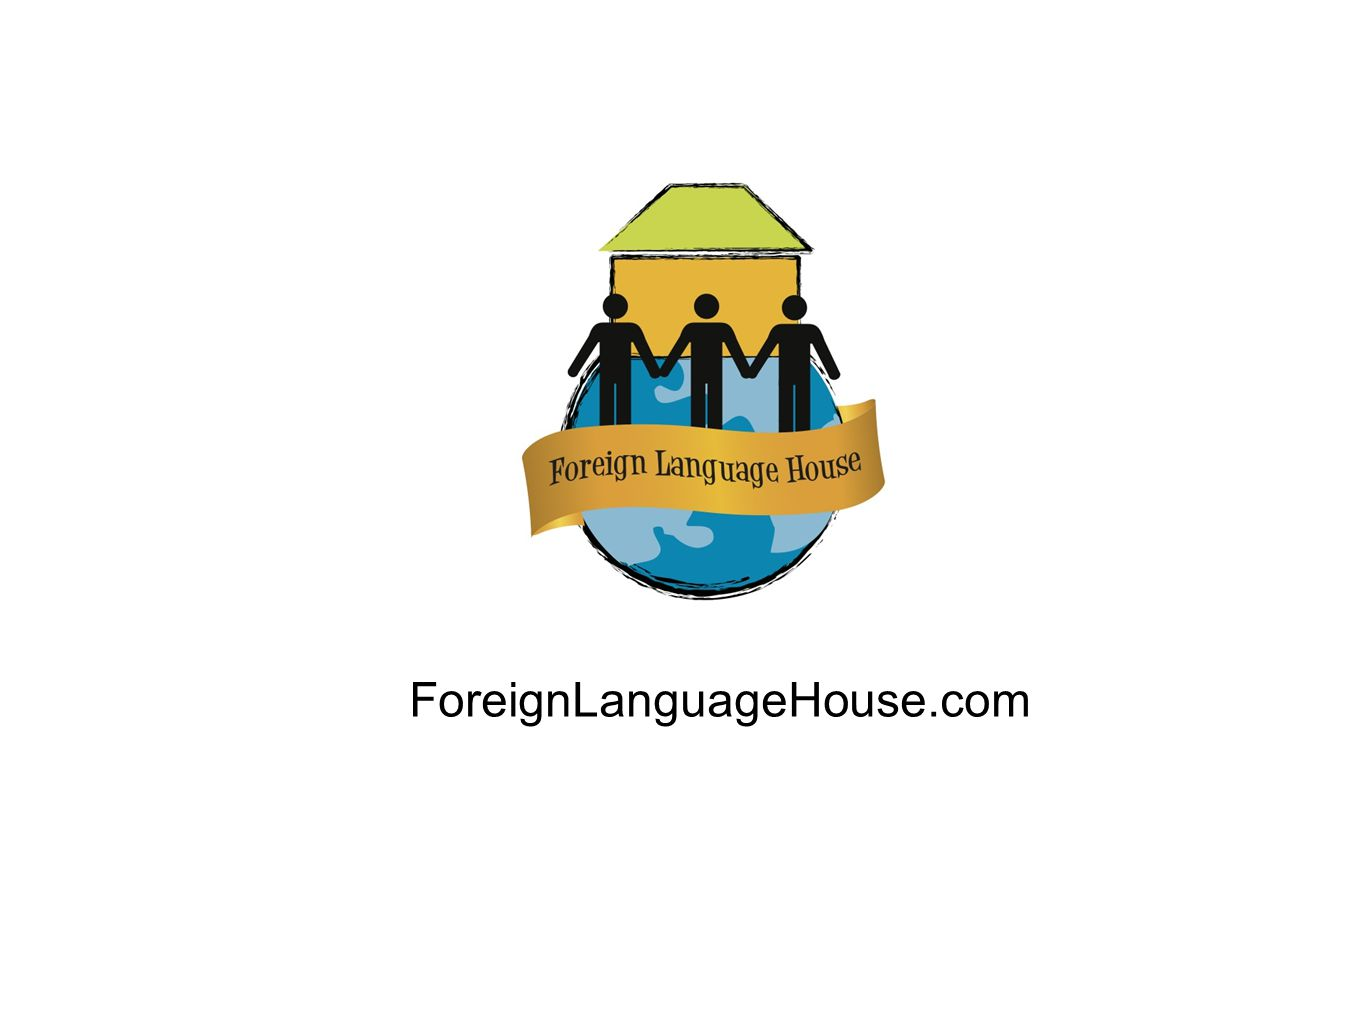 ForeignLanguageHouse.com